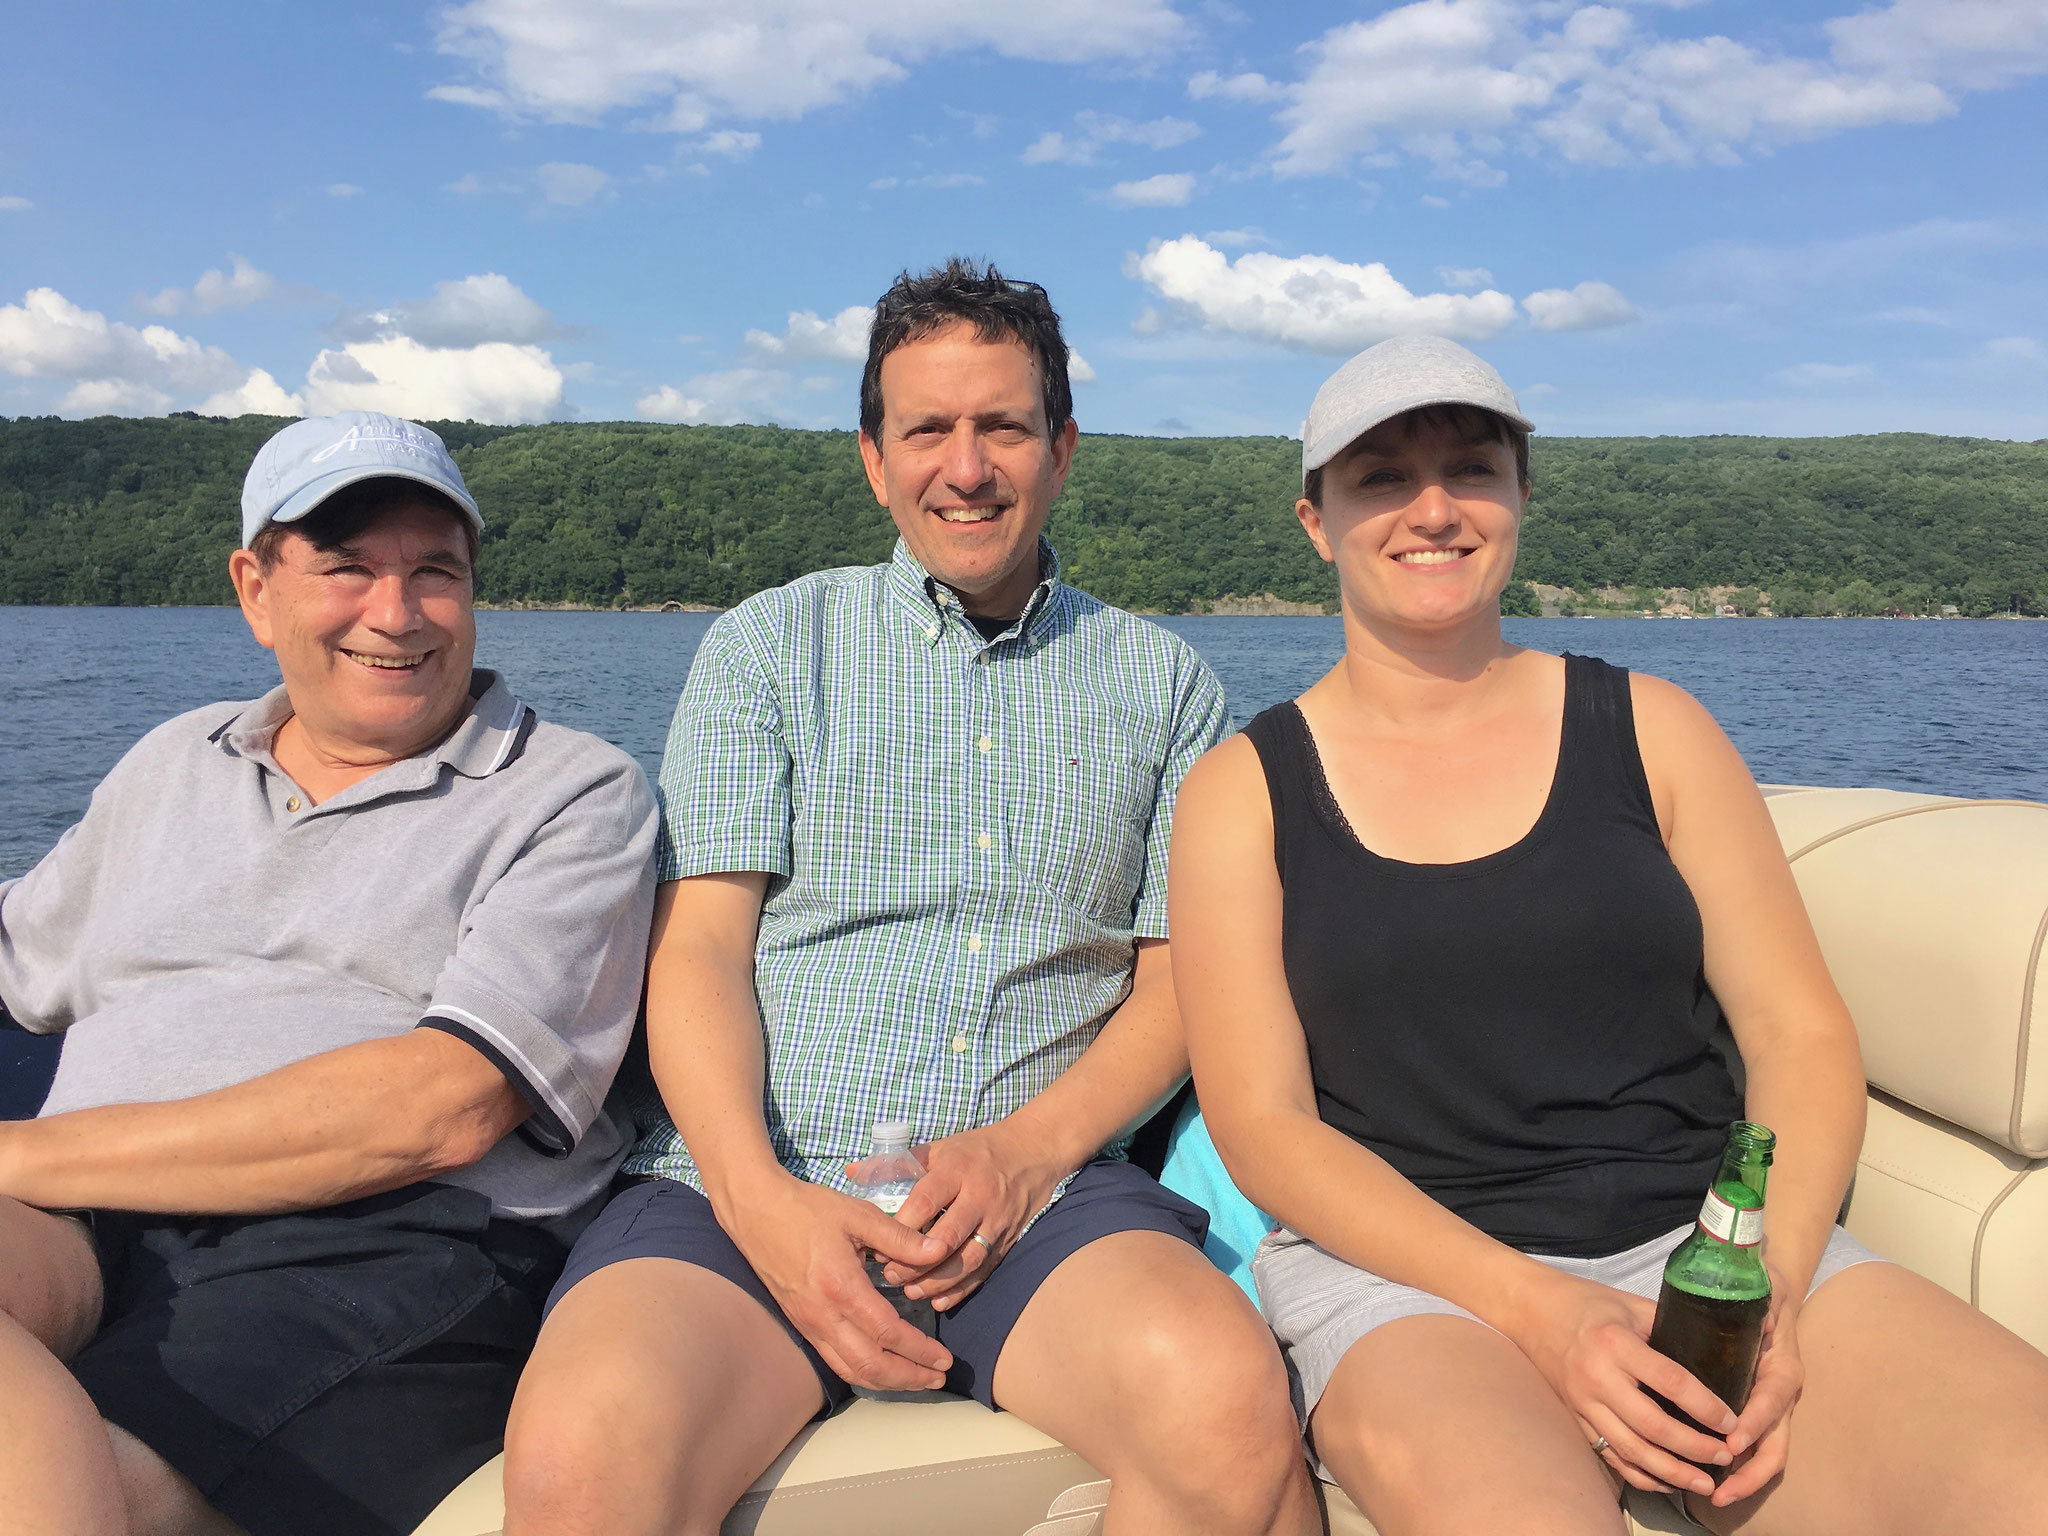 John, Nick, & Wendy, July 2018